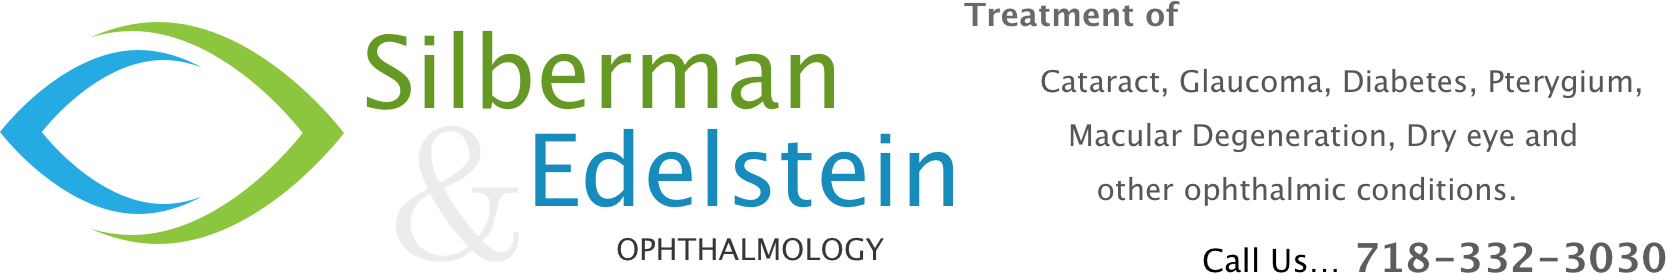 The practice of Dr Silberman and Dr Edelstein provides top quality eye care in Brooklyn since 1988. We are a husband and wife family practice treating a variety of ophthalmic problems such as cataract, glaucoma, diabetes, pterygium and most other ophthalmic diseases.